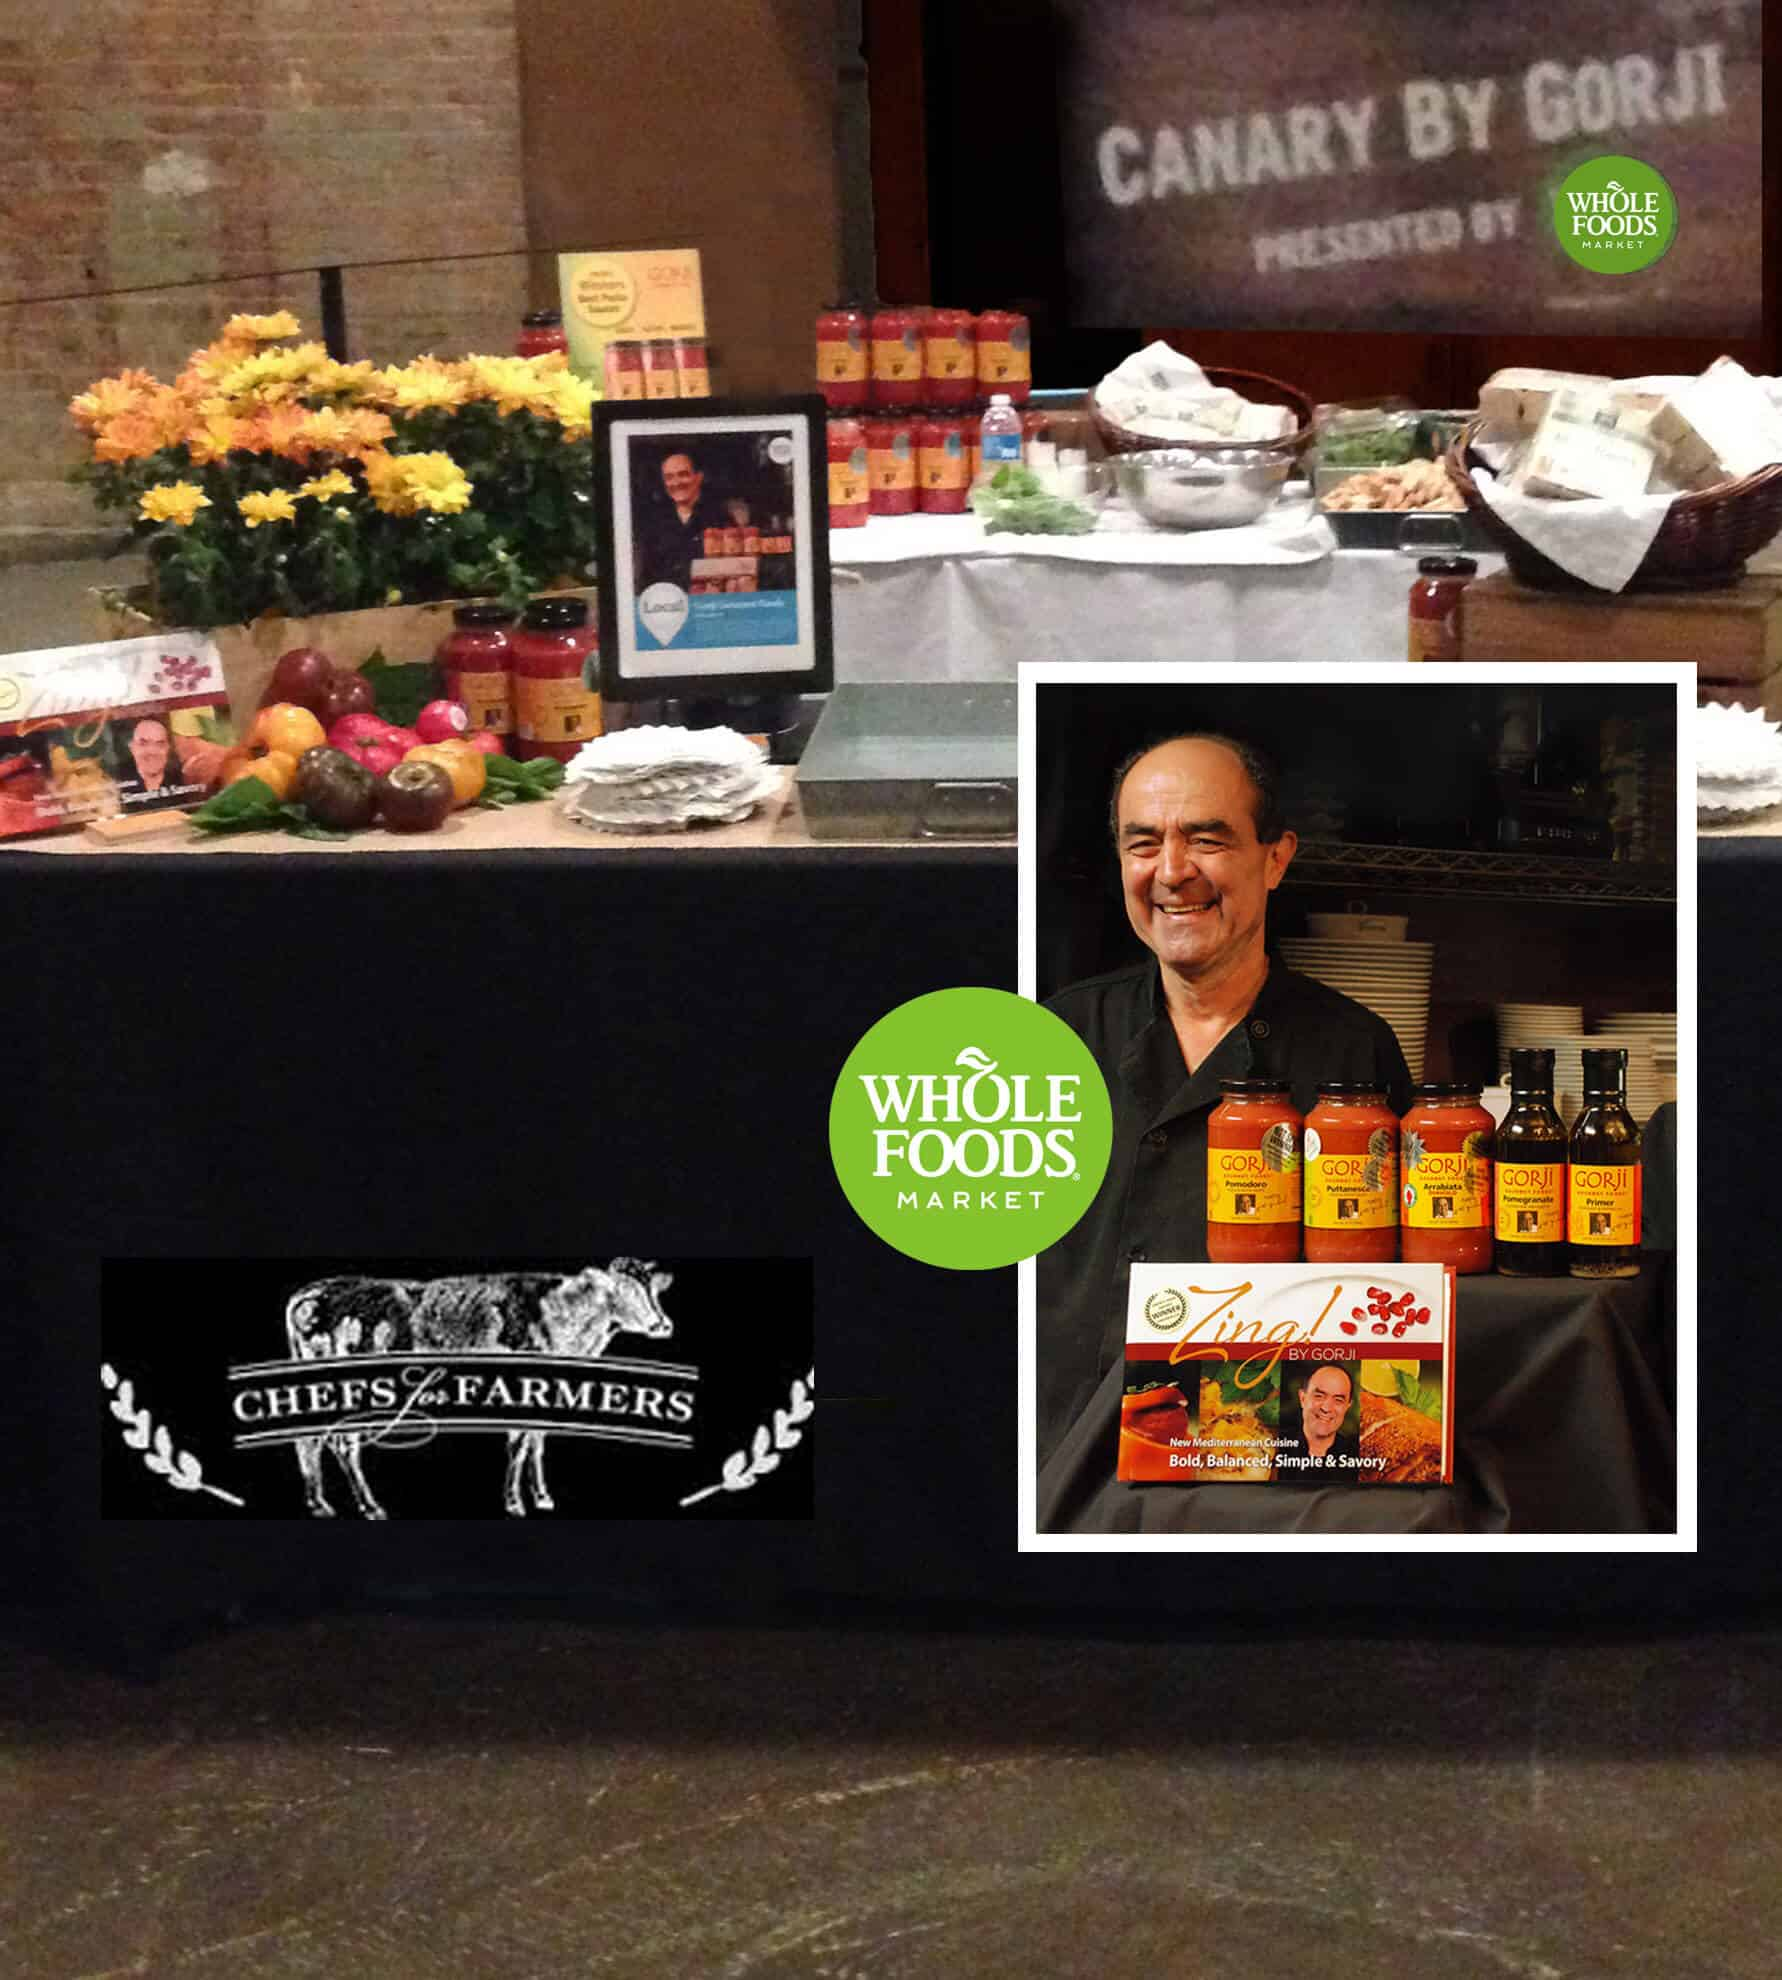 Chefs For Farmers 2016 Event and Chef Gorji with Whole Foods Booth